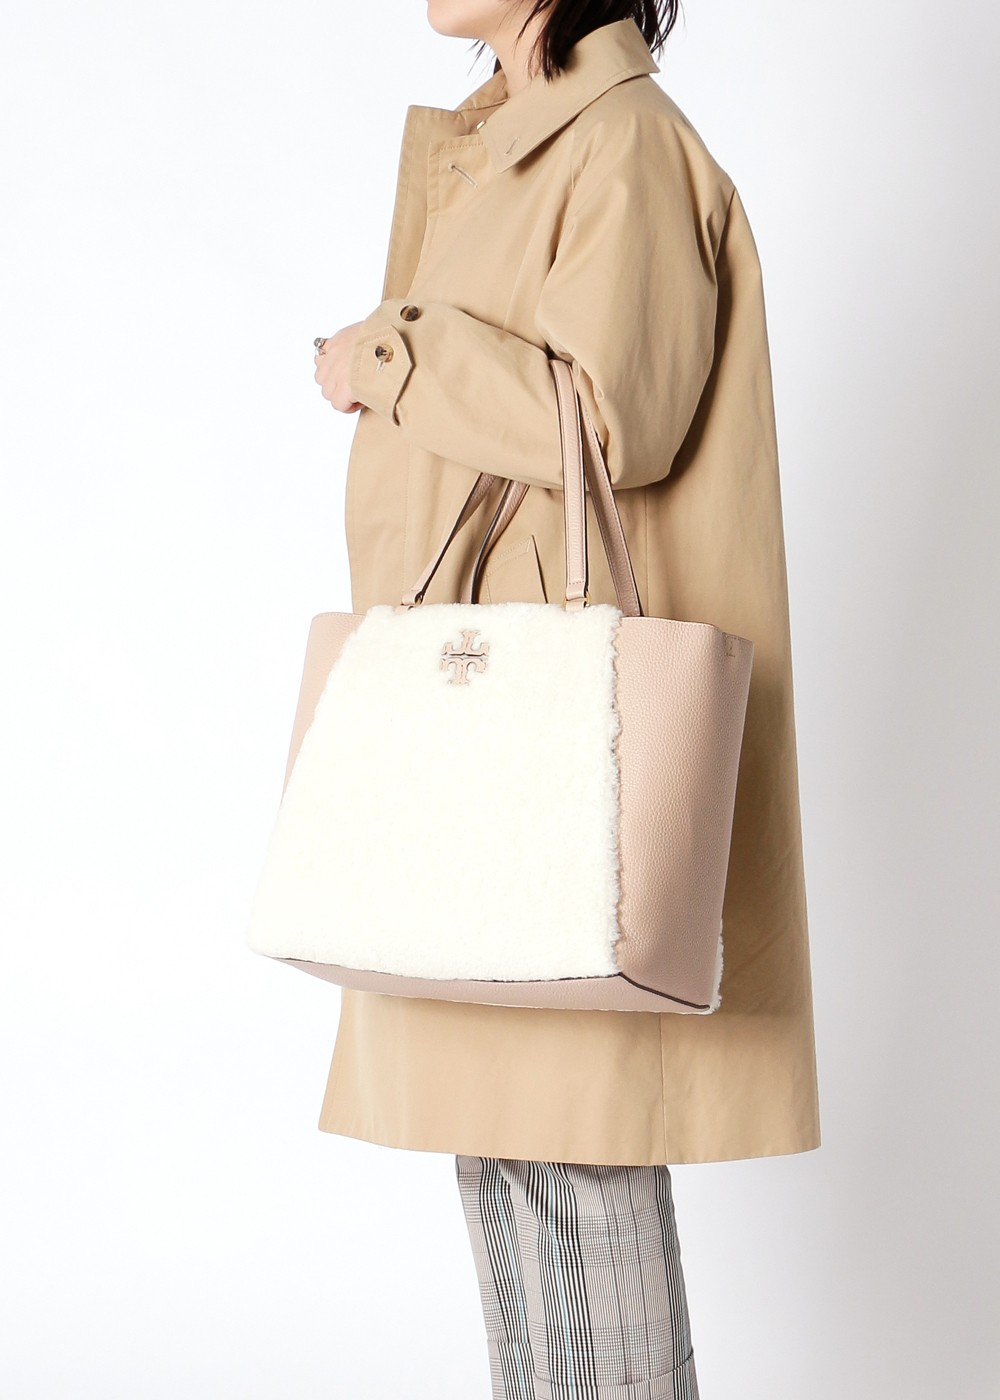 TORY BURCH|トリバーチ|MCGRAW|マックグロー|SHEARLING CARRYALL